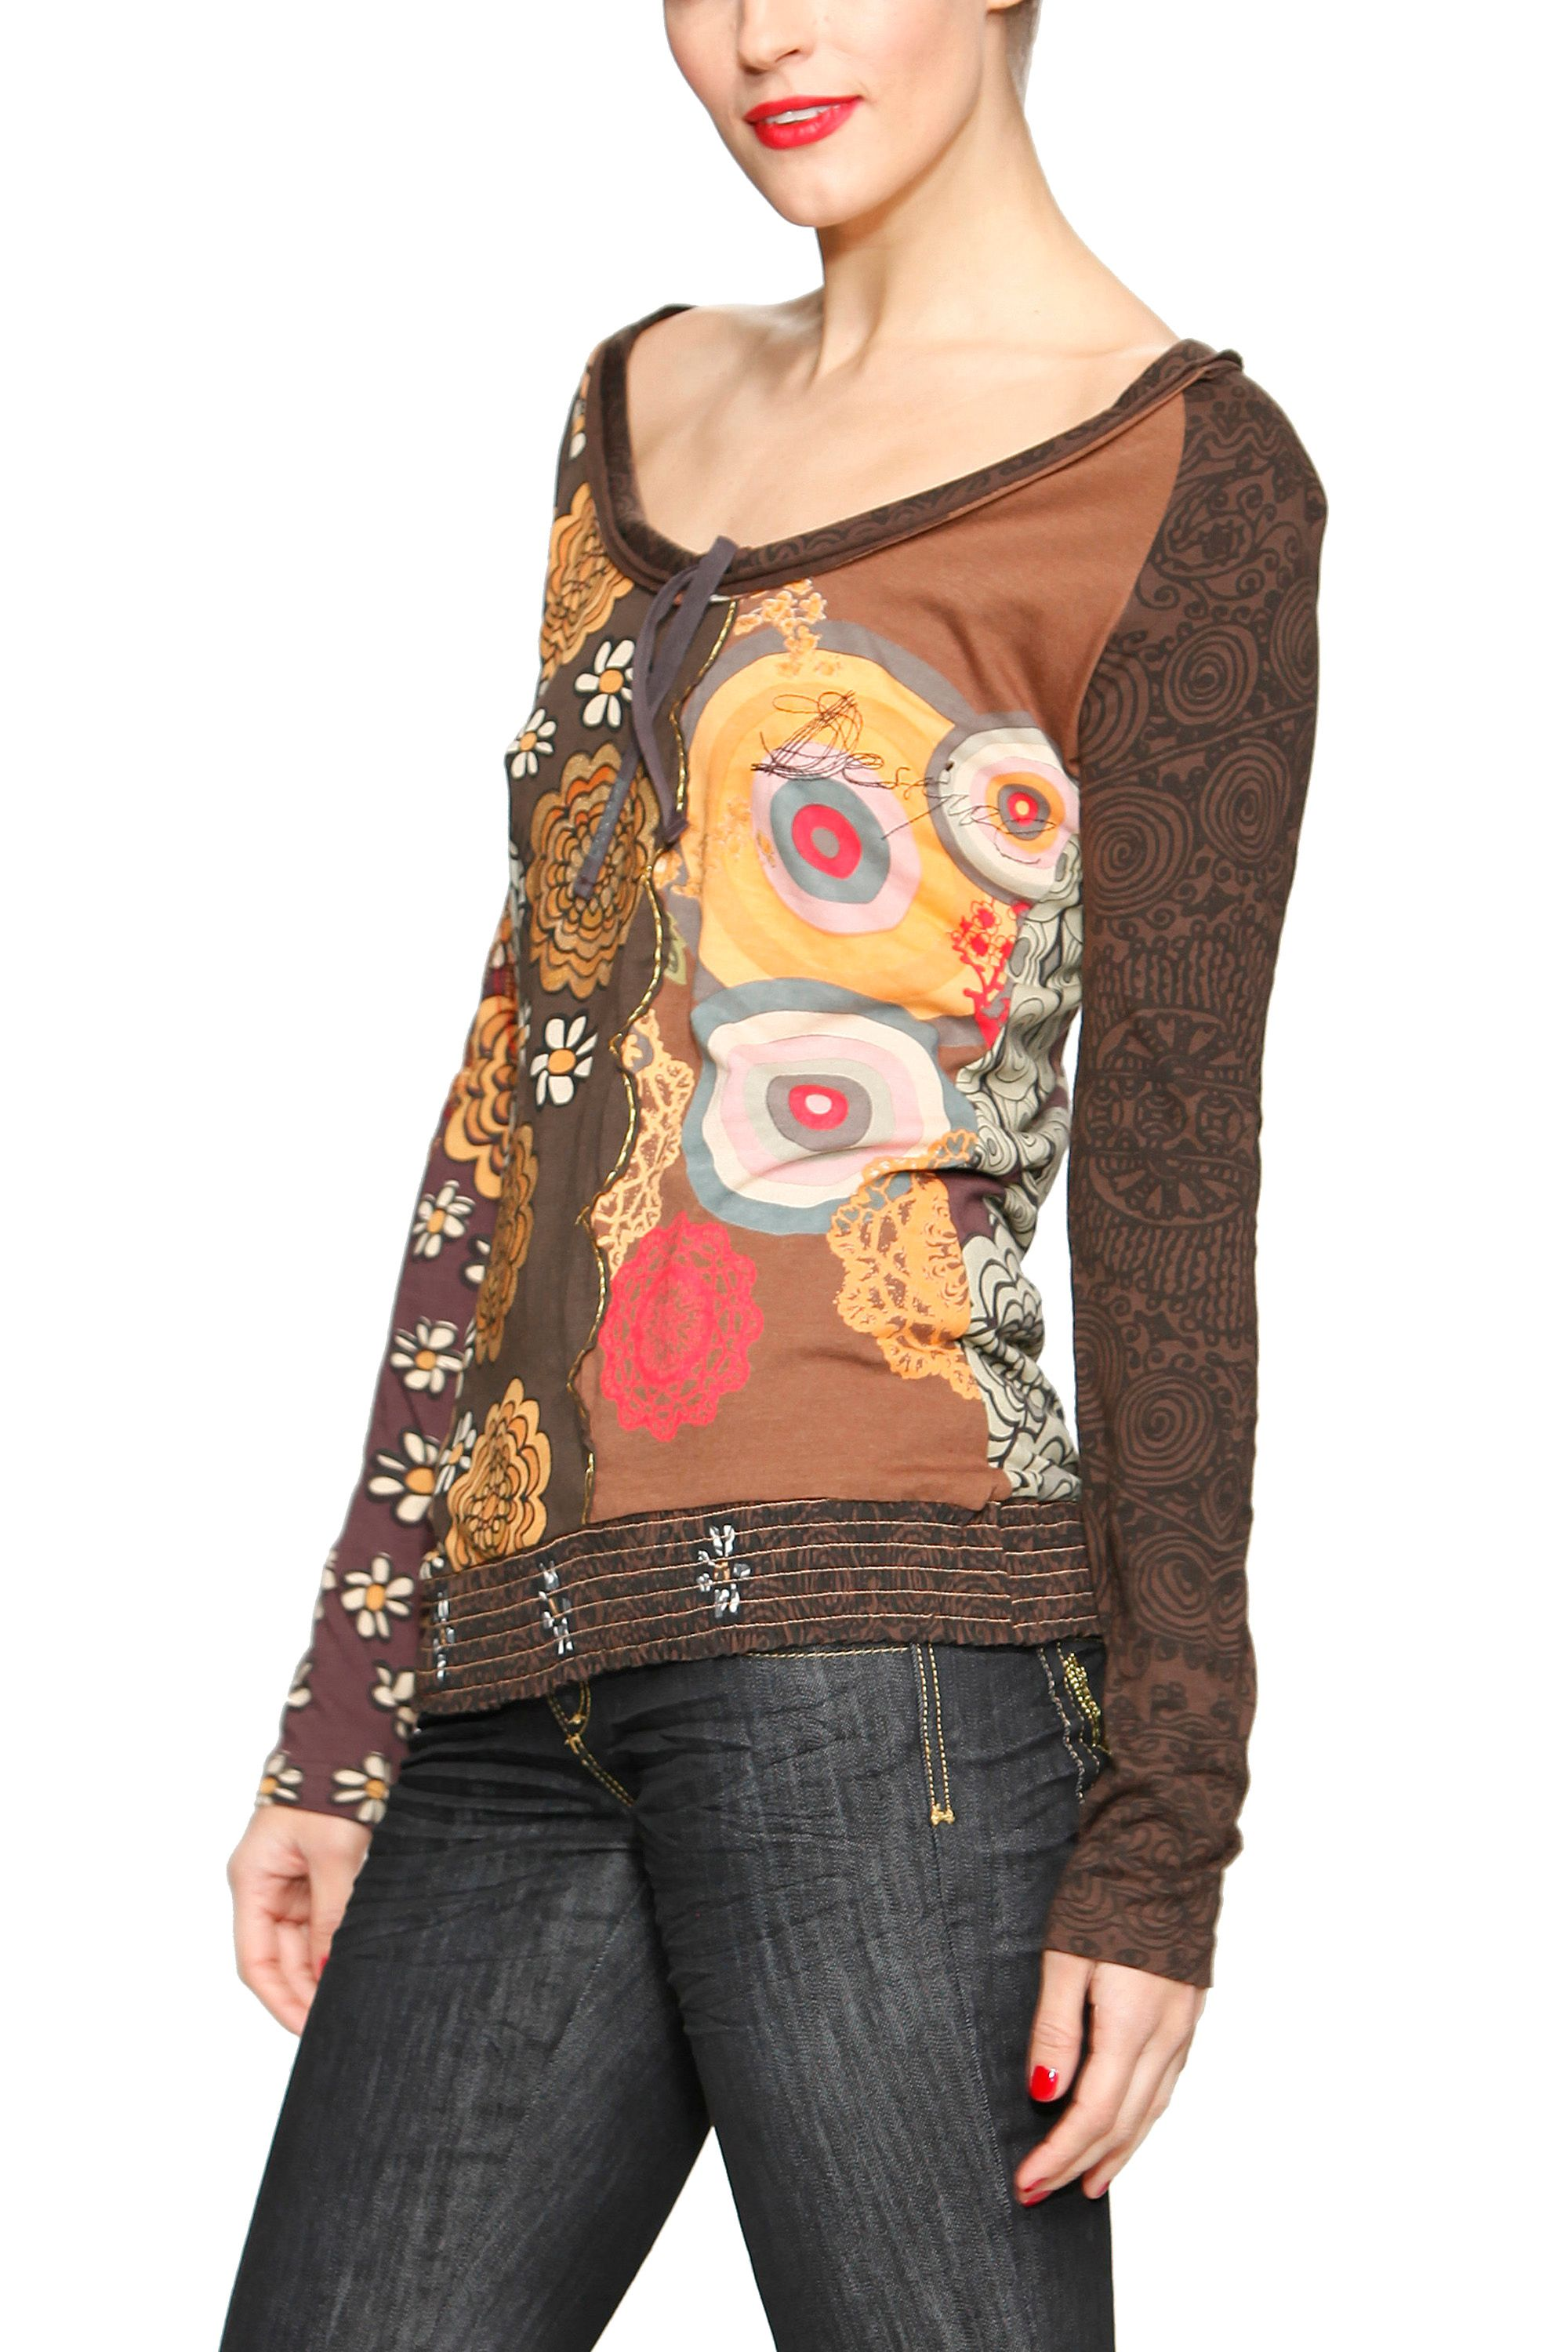 Desigual Womens Desigual T-shirt niebla, Brown product image